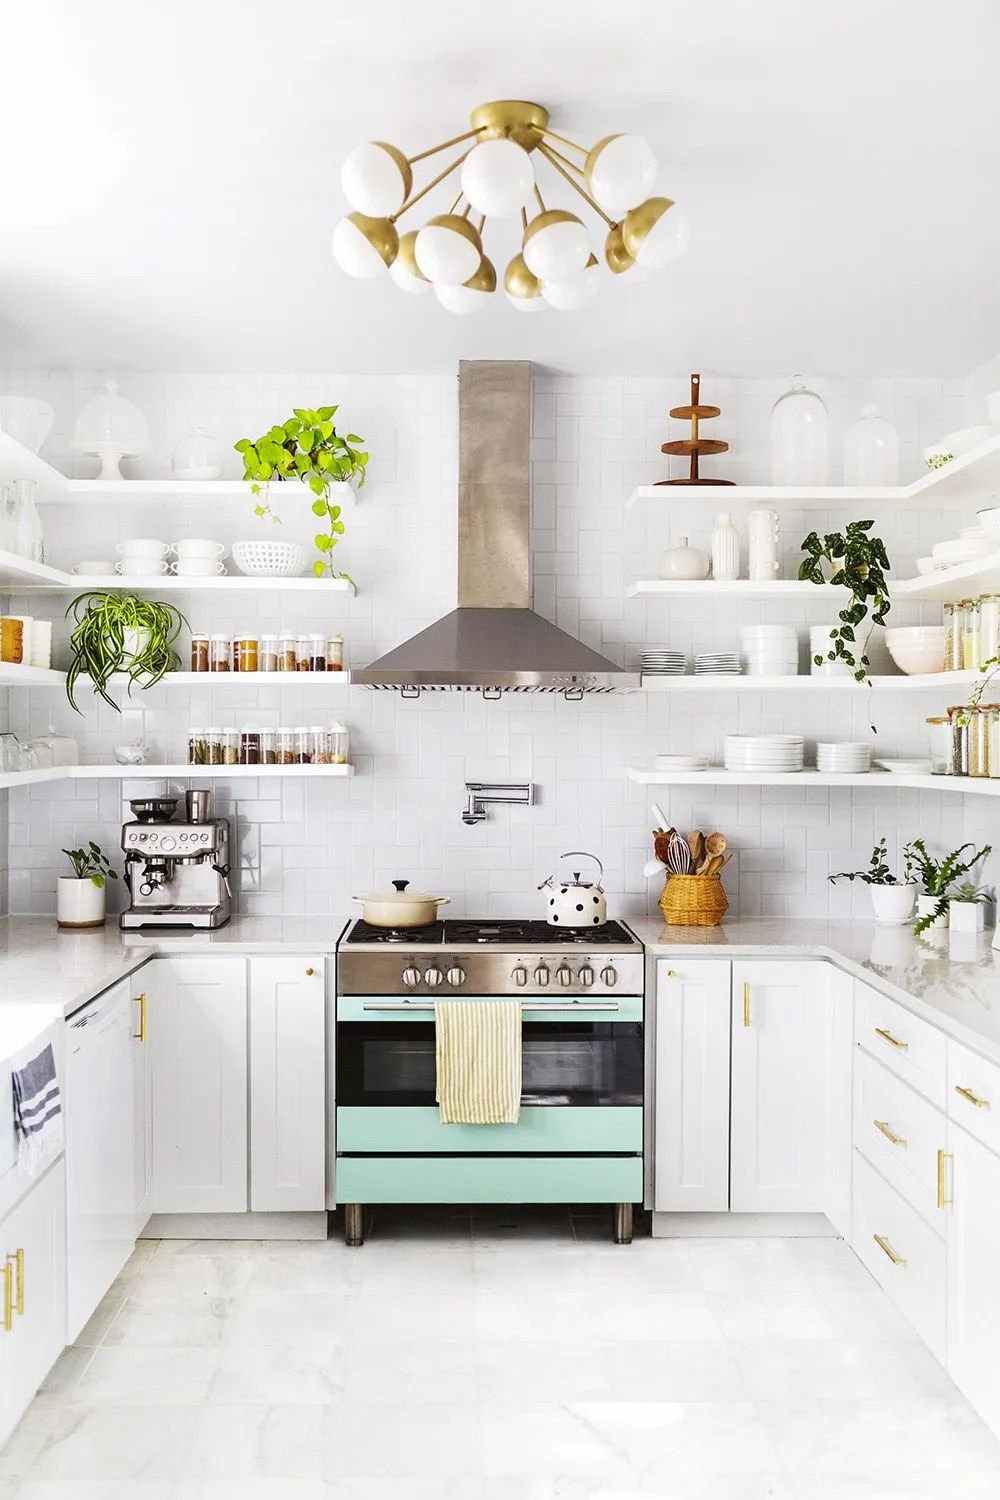 60 Best Kitchen Ideas - Decor and Decorating Ideas for ... on Kitchen Decoration Ideas  id=21085